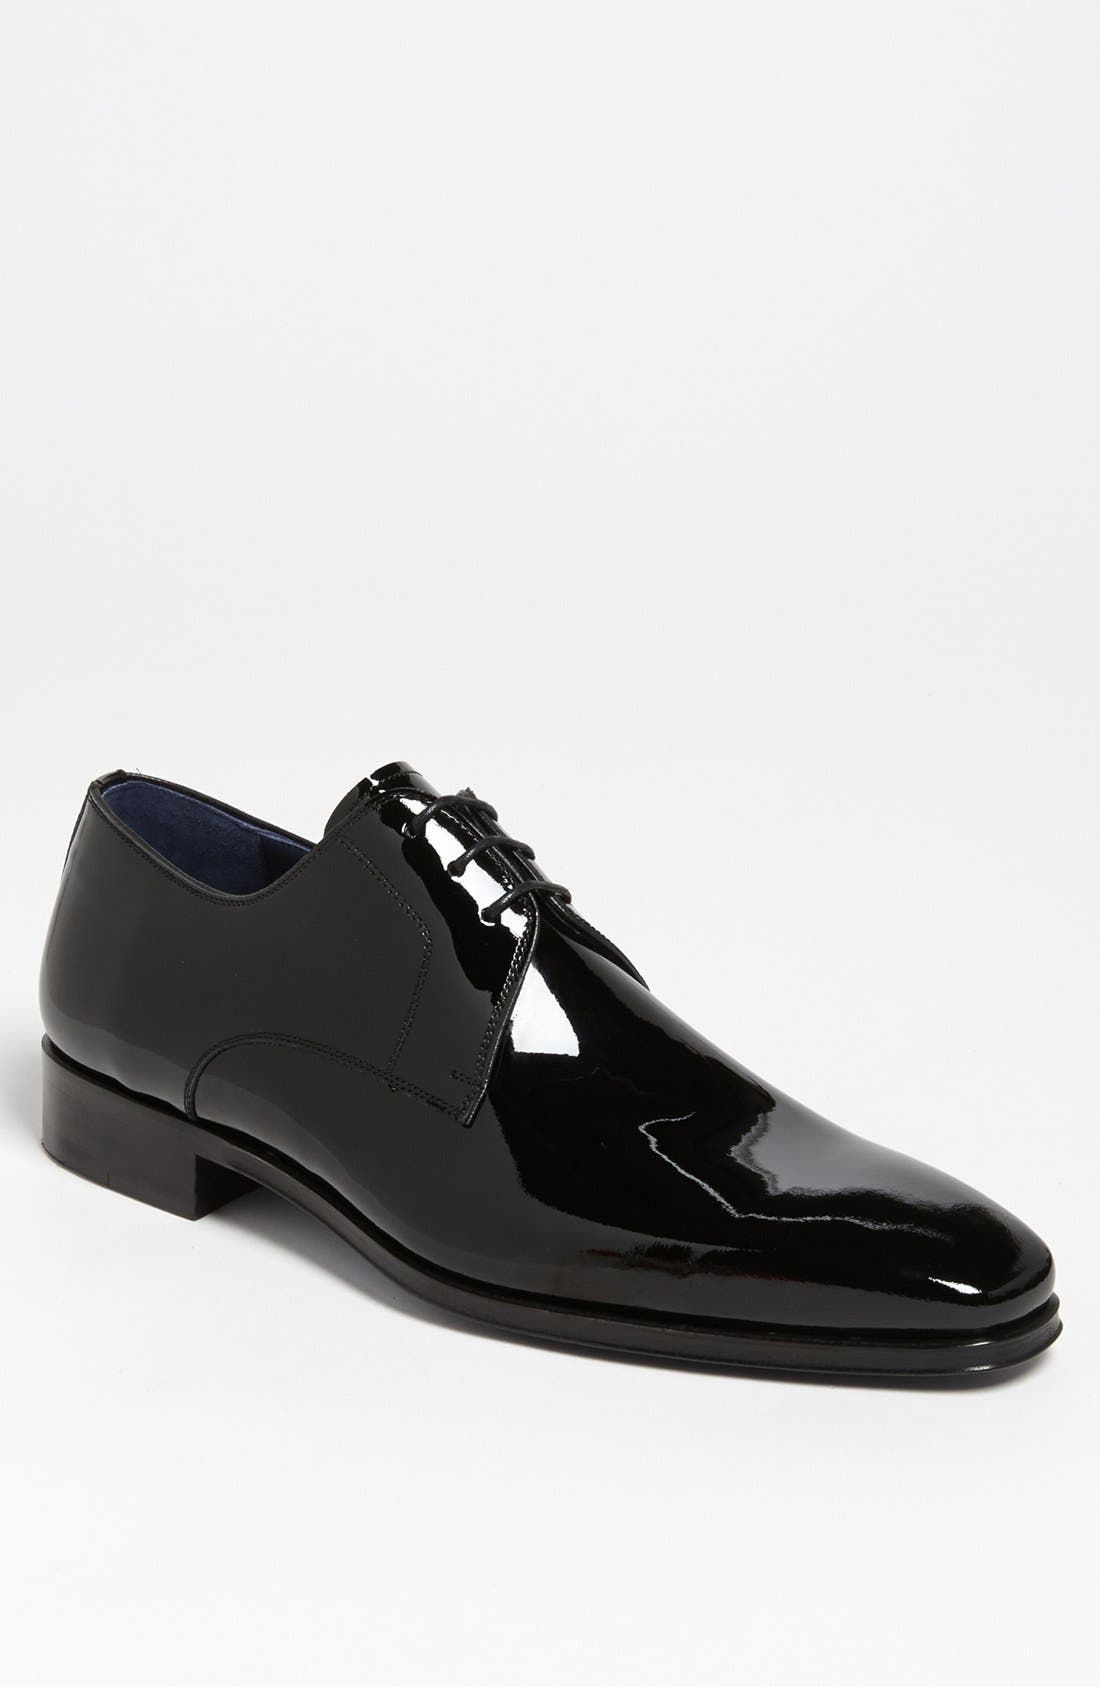 Magnanni 'Dante' Plain Toe Derby